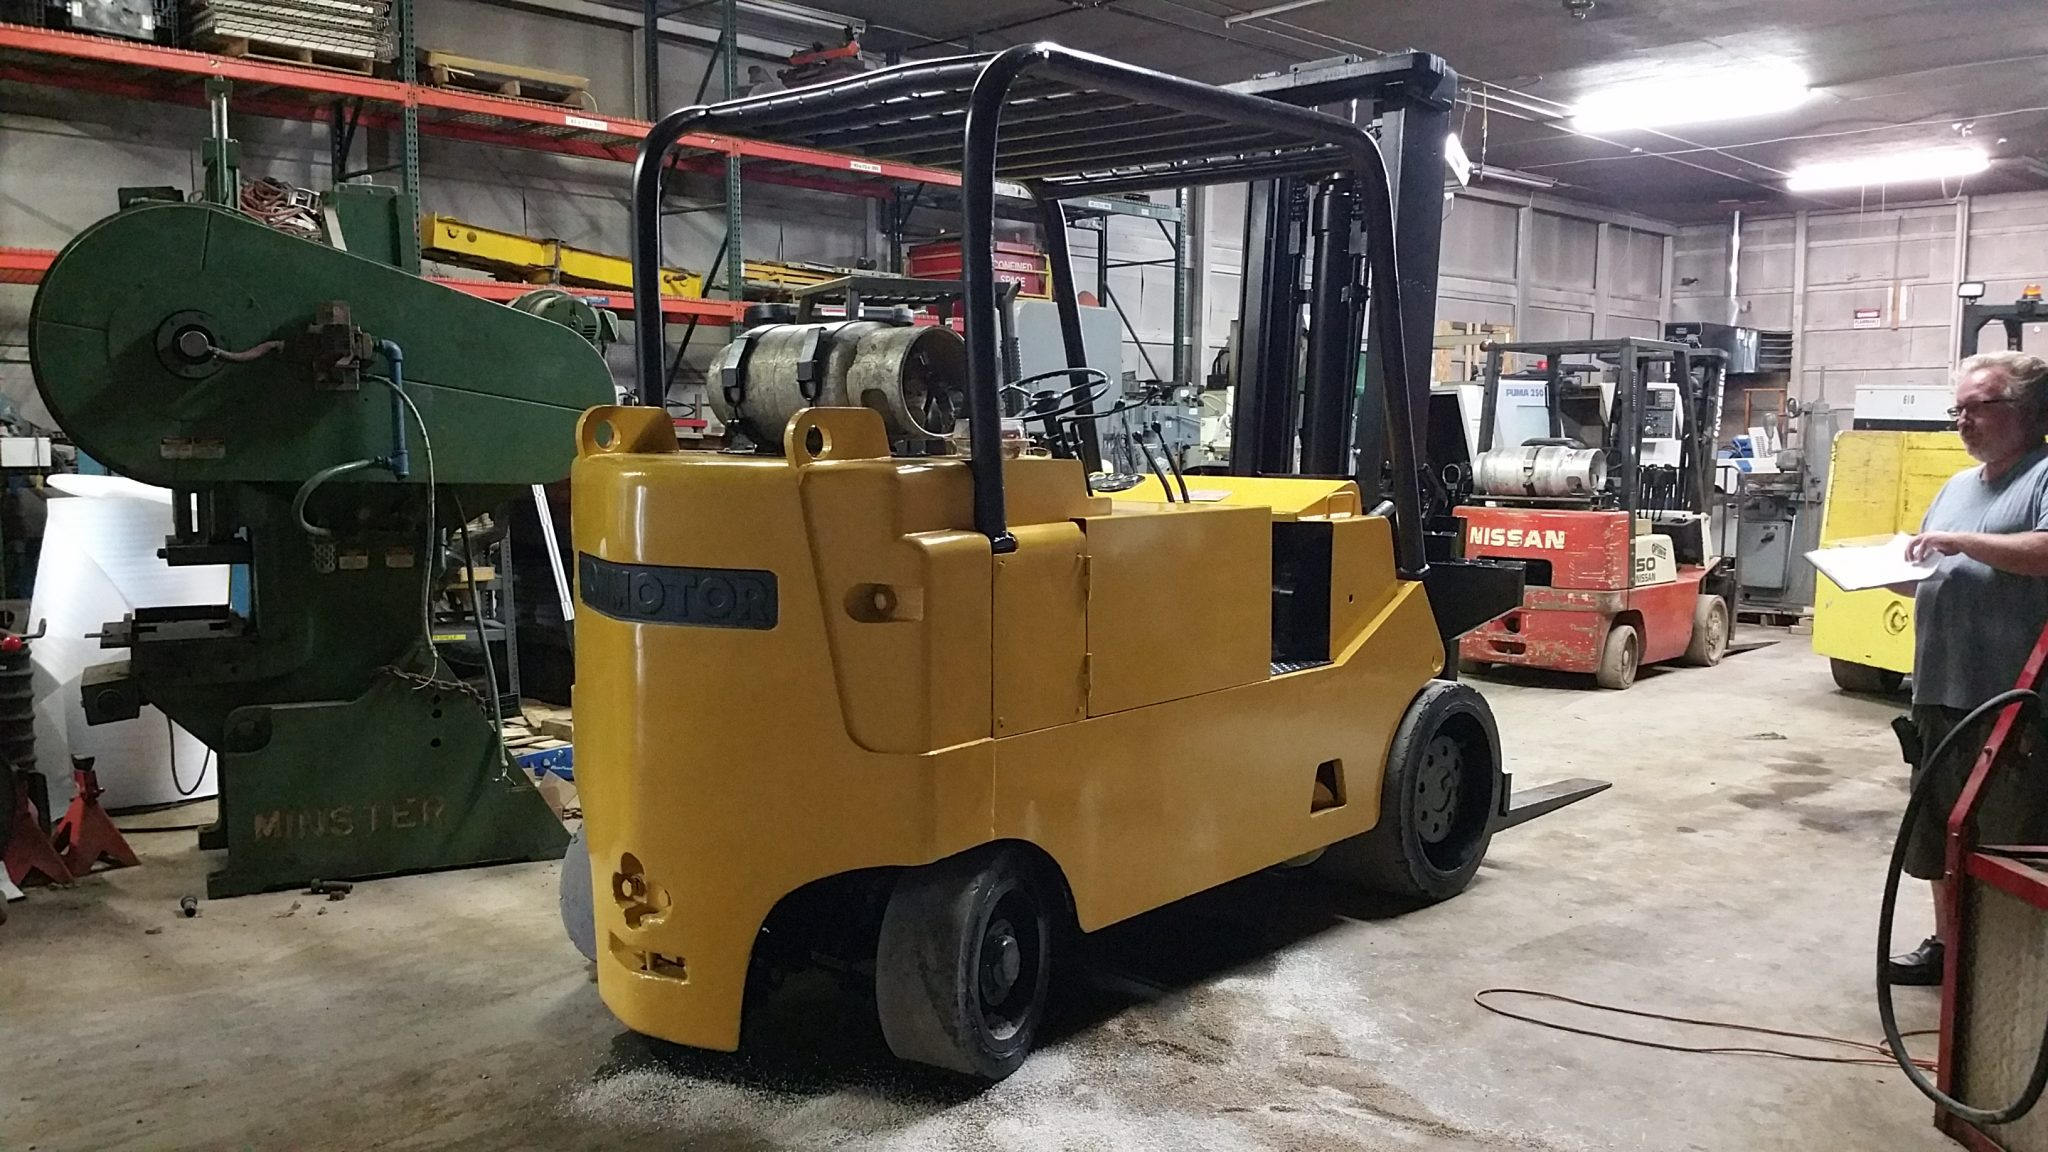 20 000lb cat towmotor forklift for sale call 616 200 4308 for Forklift motor for sale